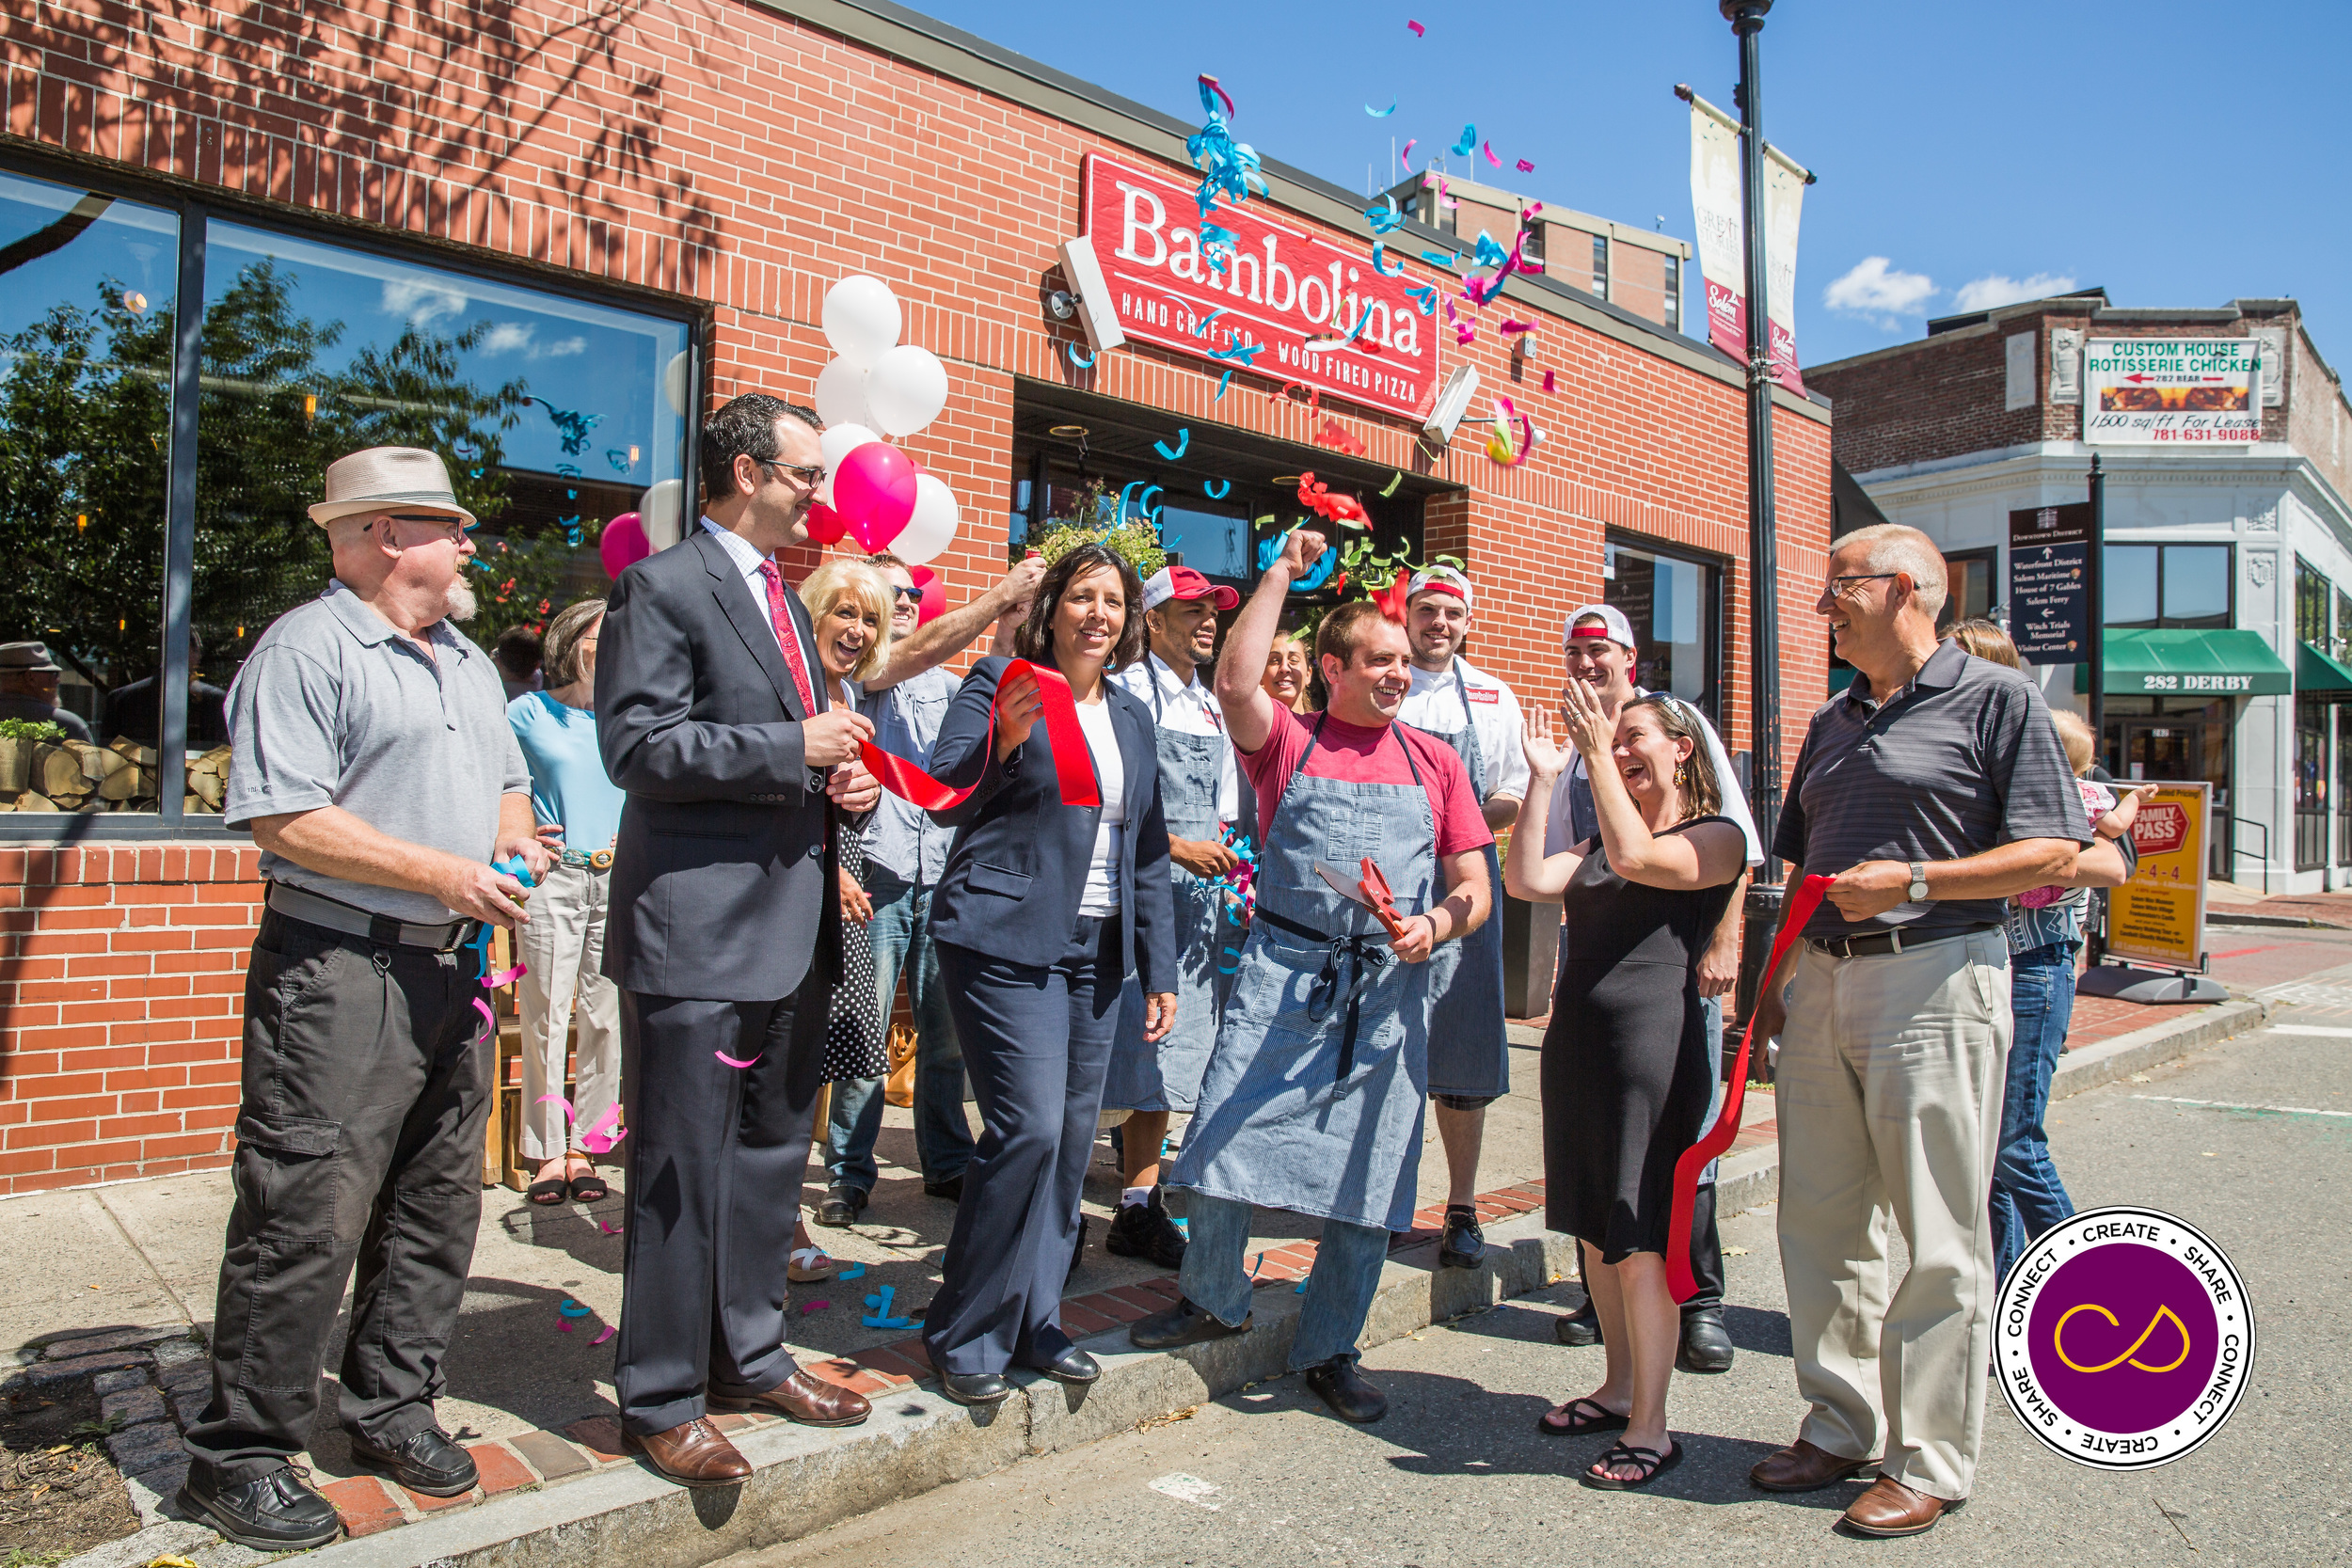 Bambolina ribbon cutting salem ma photos by Creative Salem_9191.jpg